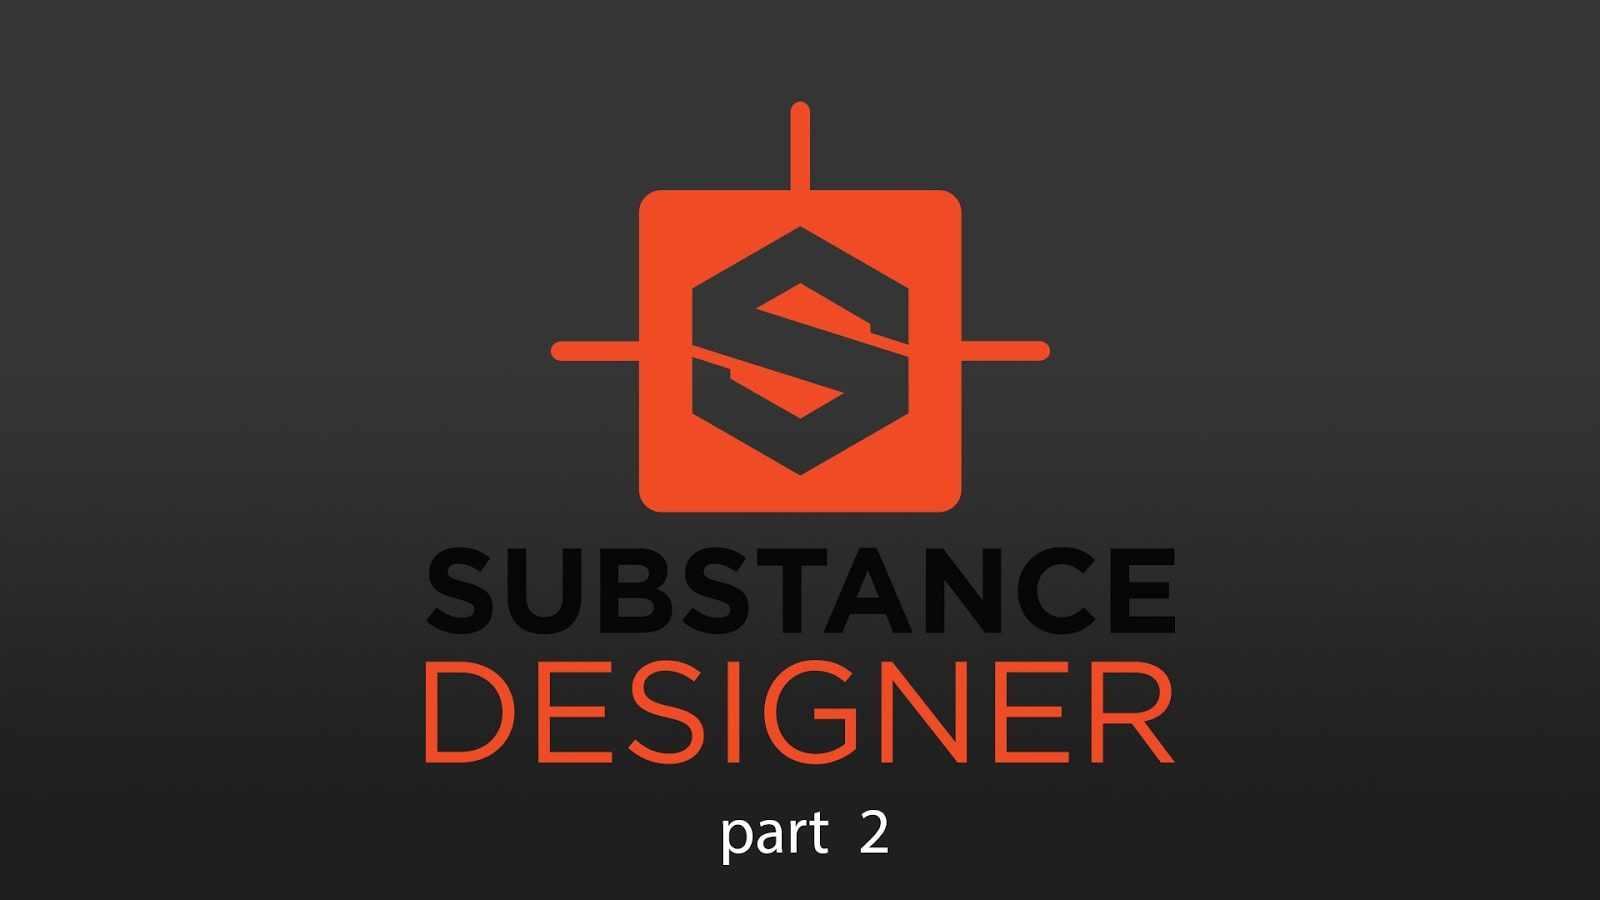 Substance_designer_part2_youtube.jpg